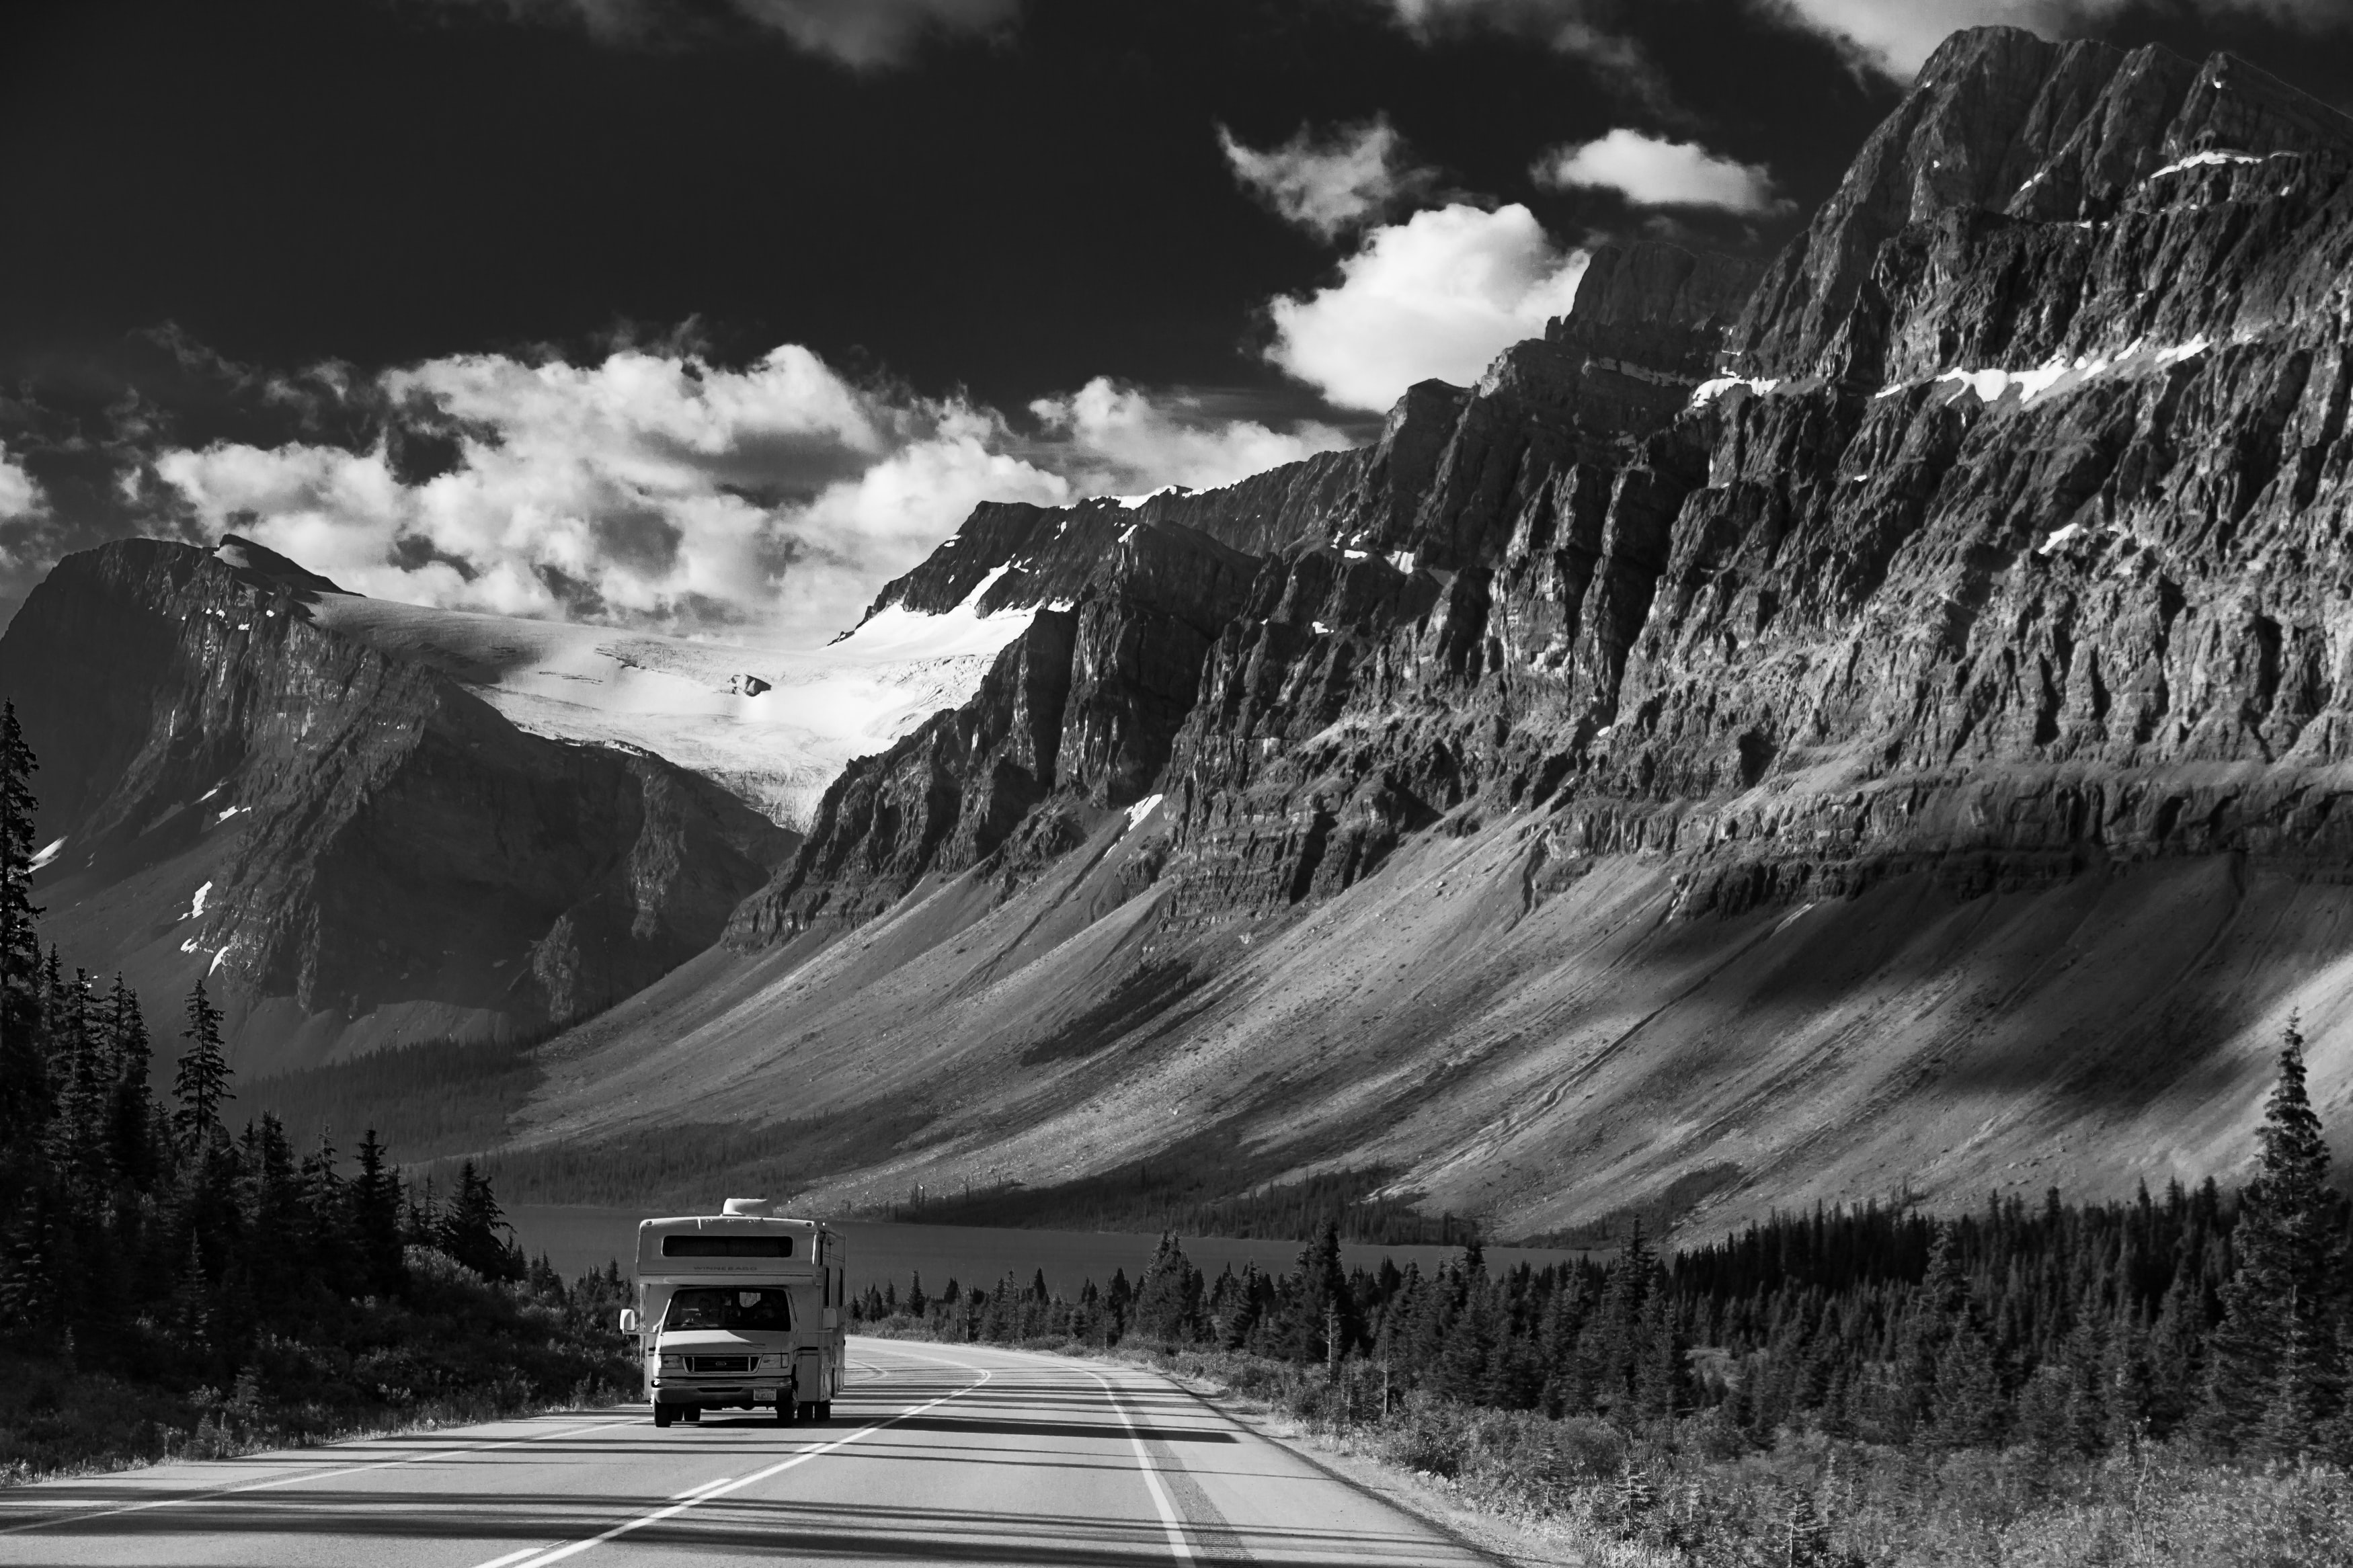 grayscale photo of vehicle passing on road near mountain range